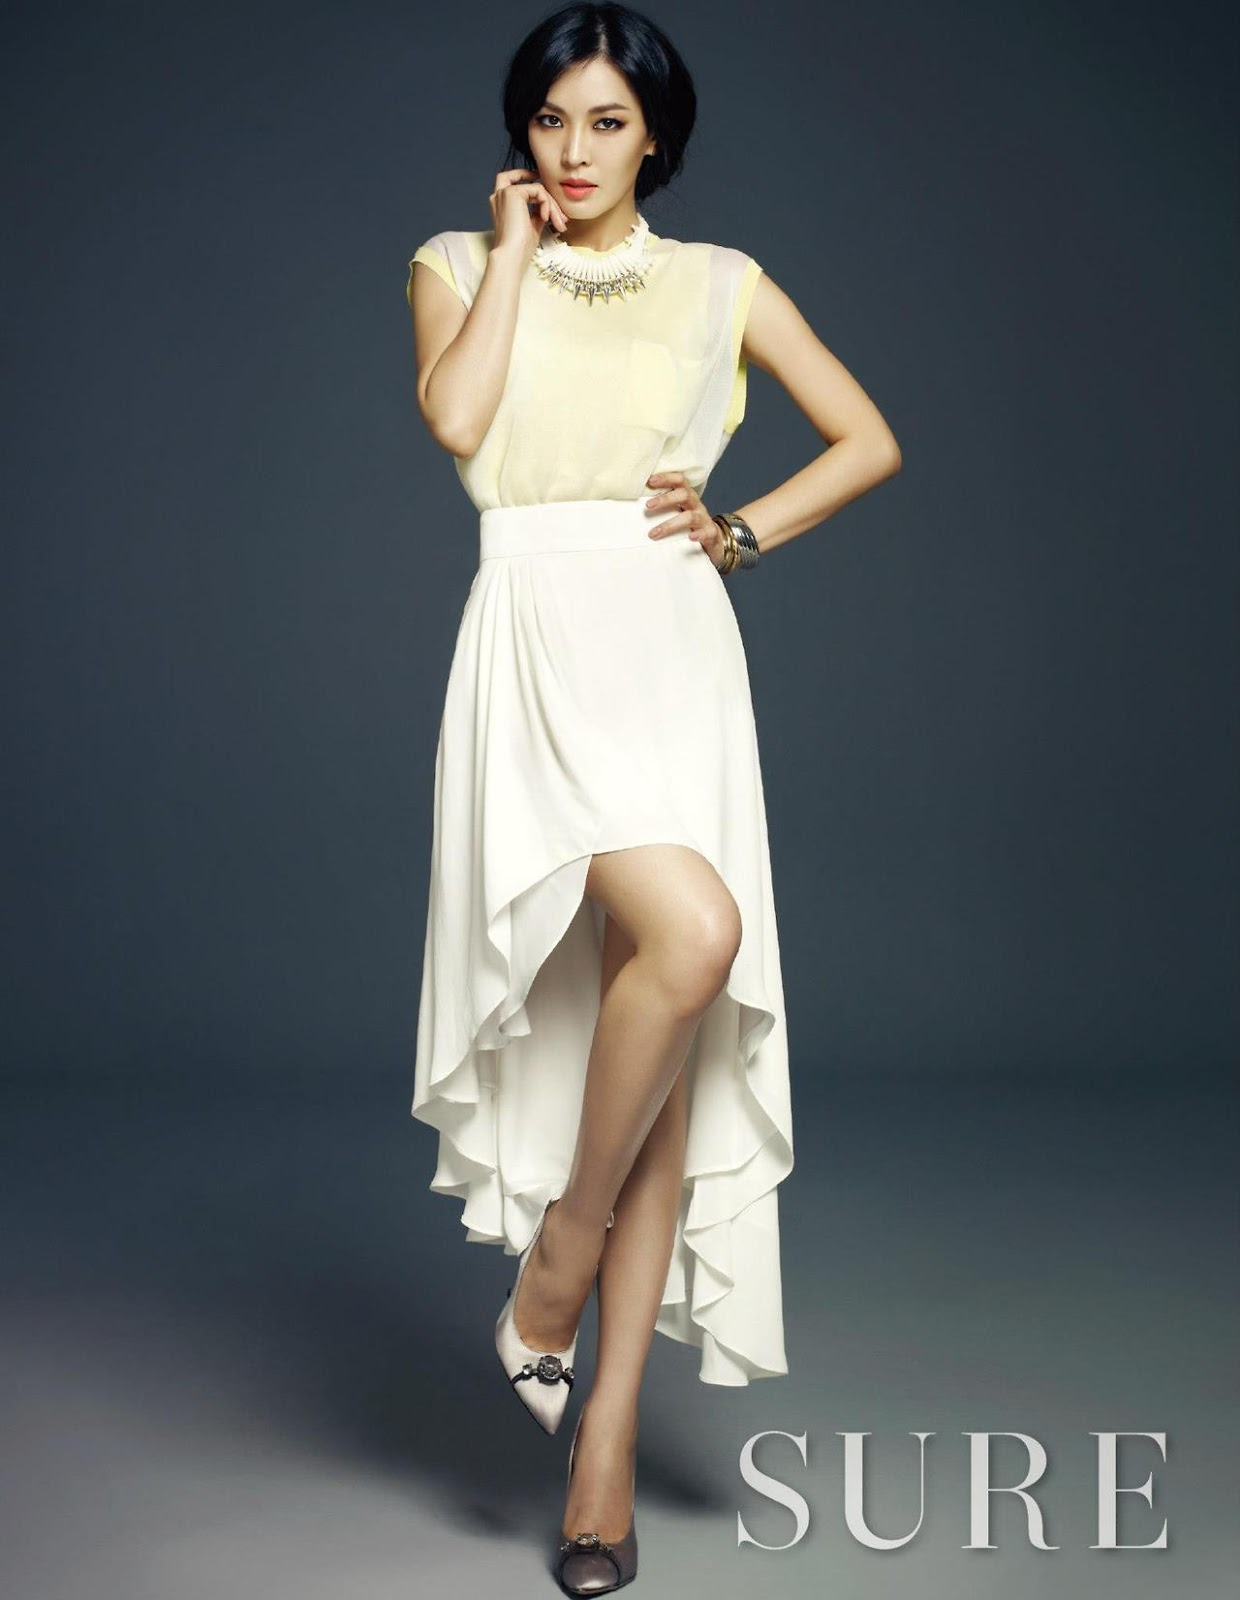 Kim So Yeon Sure April 2013